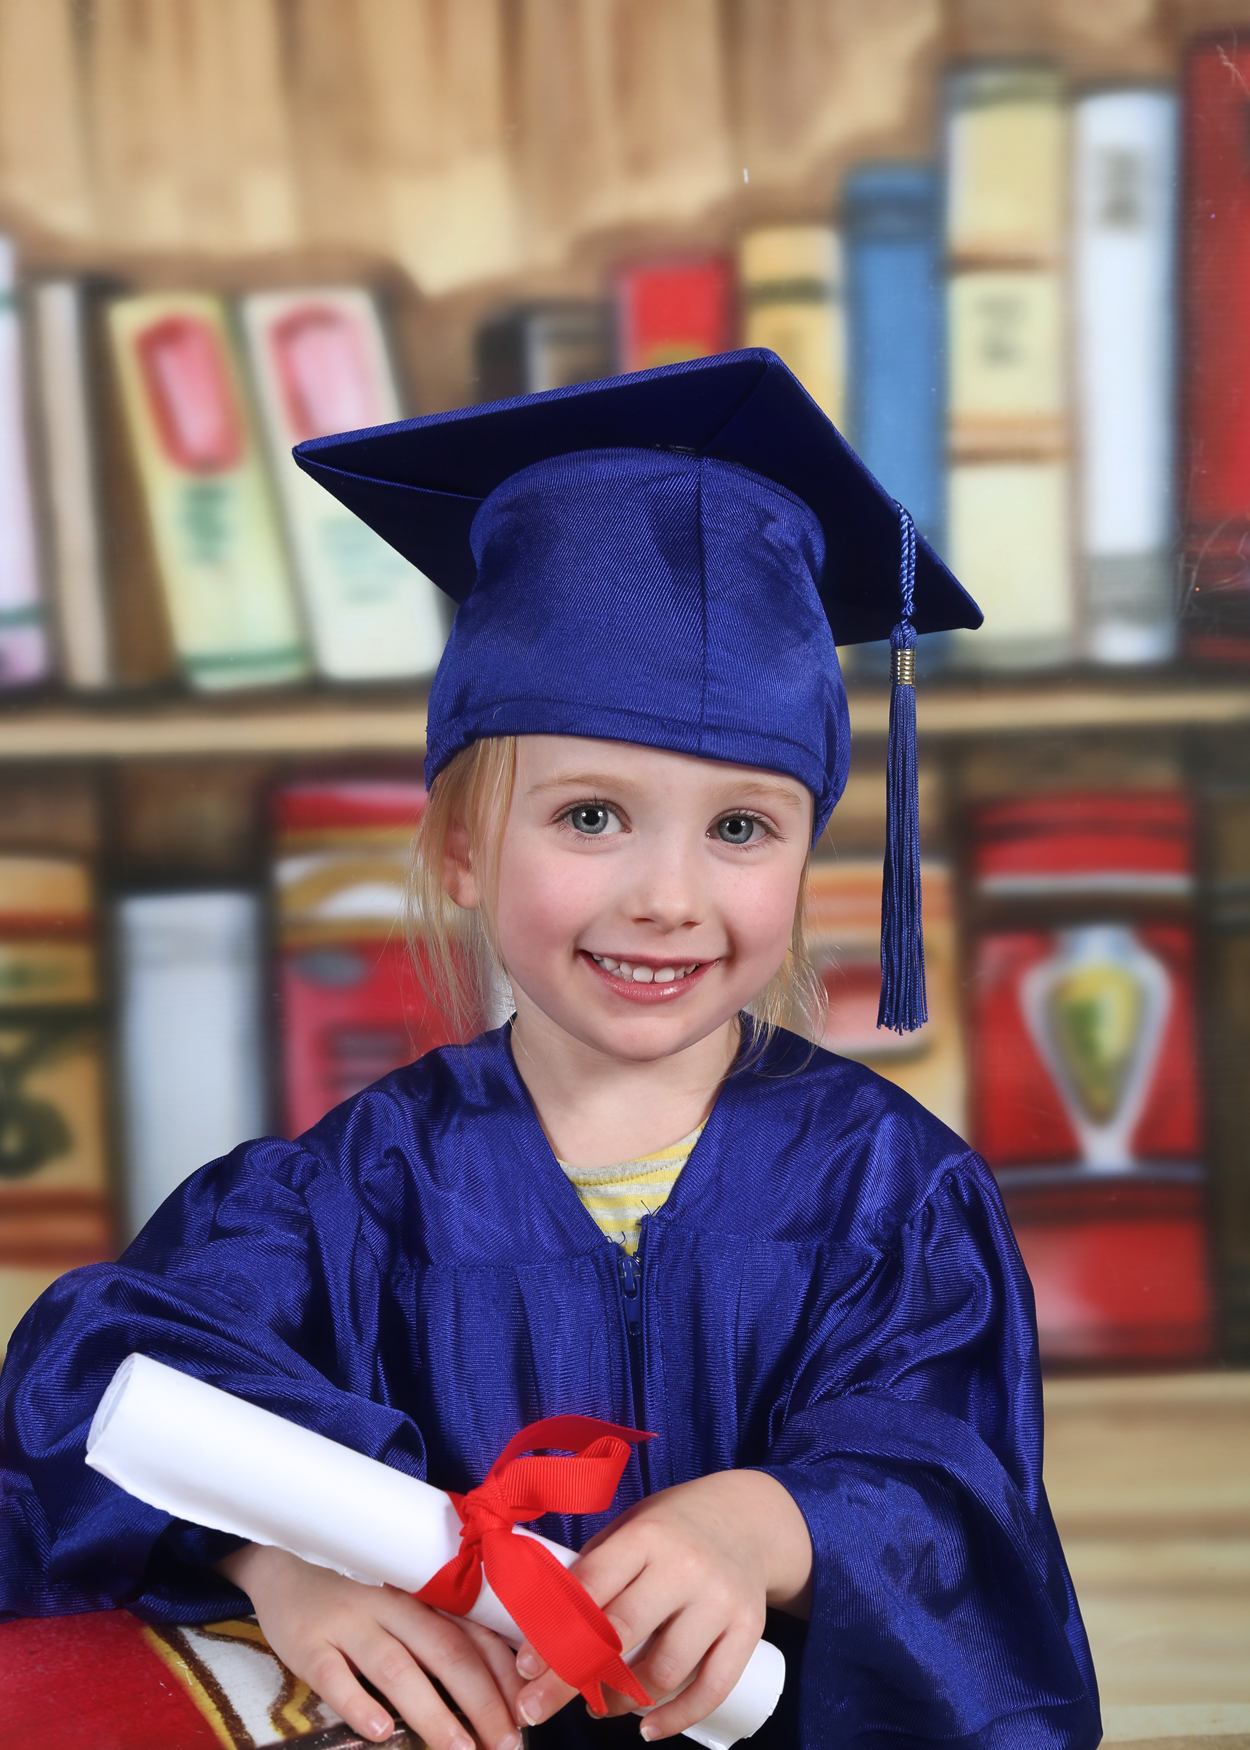 zigzag-zig-zag-photography-graduation-shoot-venture-studios-nursery-school-pre-school-photographers